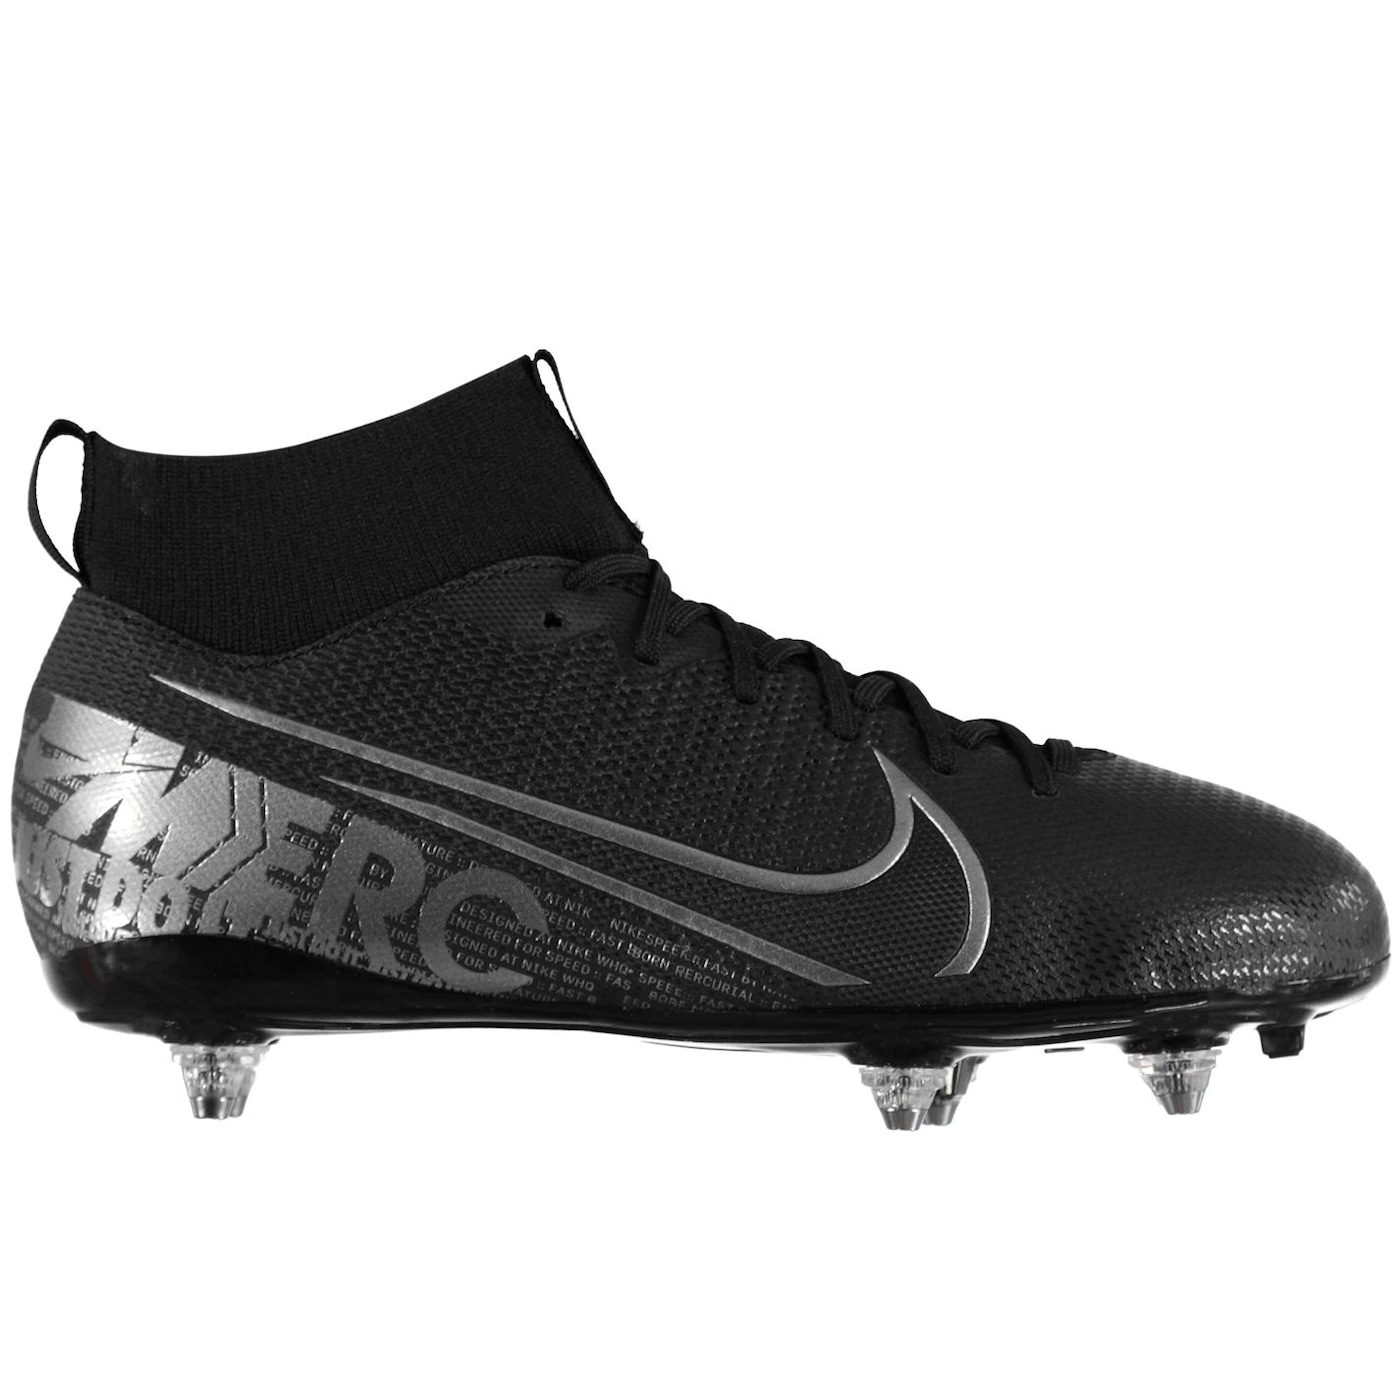 Nike Mercurial Superfly Academy DF Junior SG Football Boots